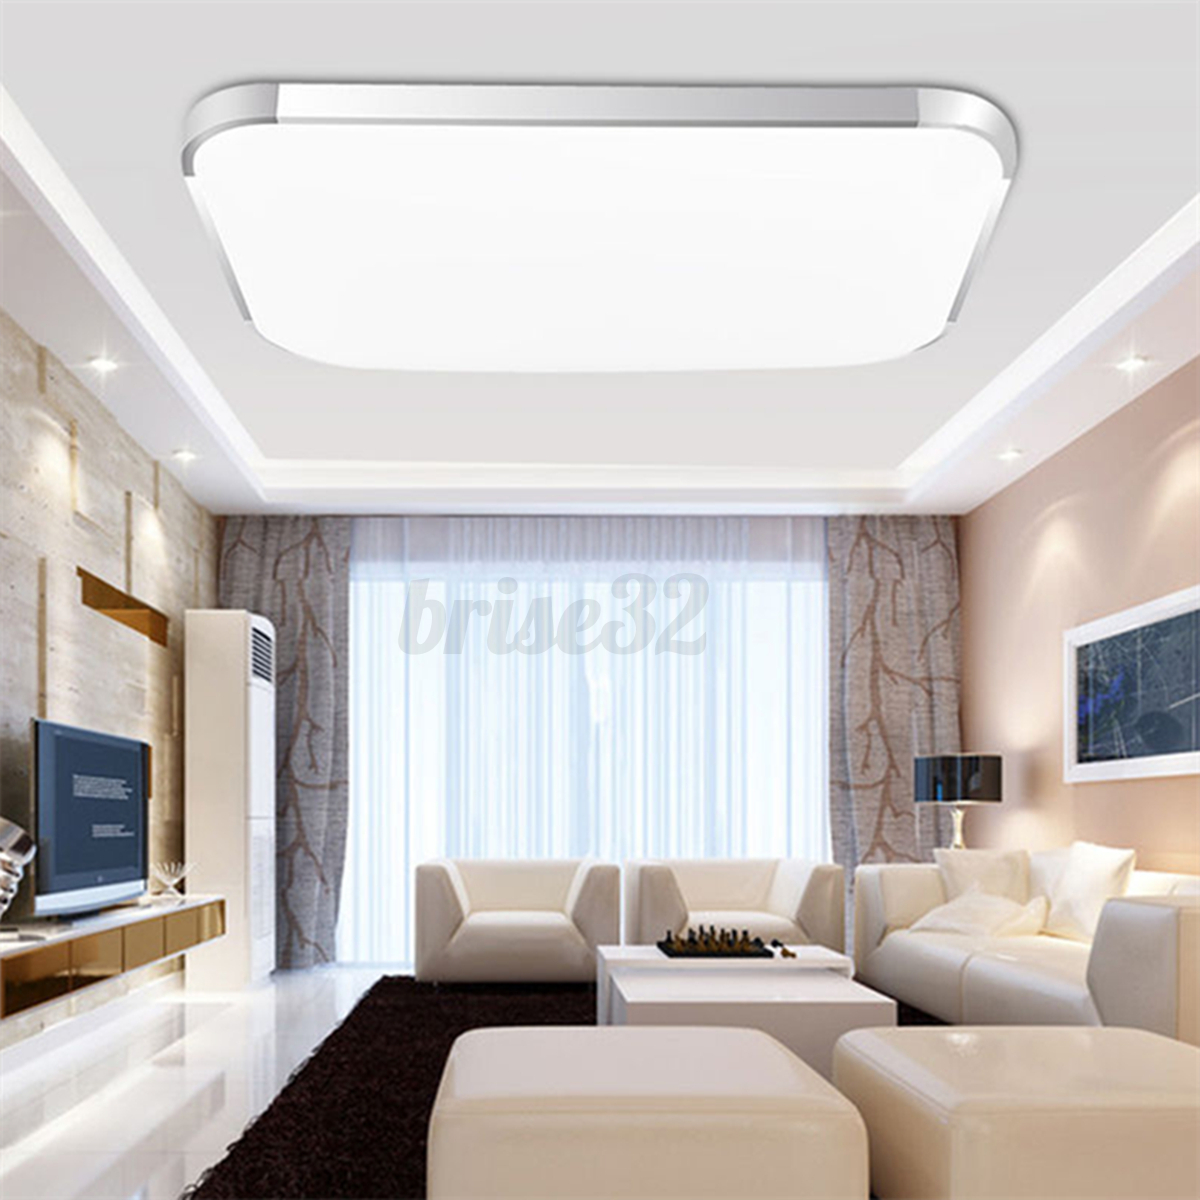 modern led square ceiling down light bedroom living room 15878 | c982268d96379acc23f092272493949993949505cdcb97bef4a745cd8414be8ec4d4a0c6e7934546c7c60323f54ecb